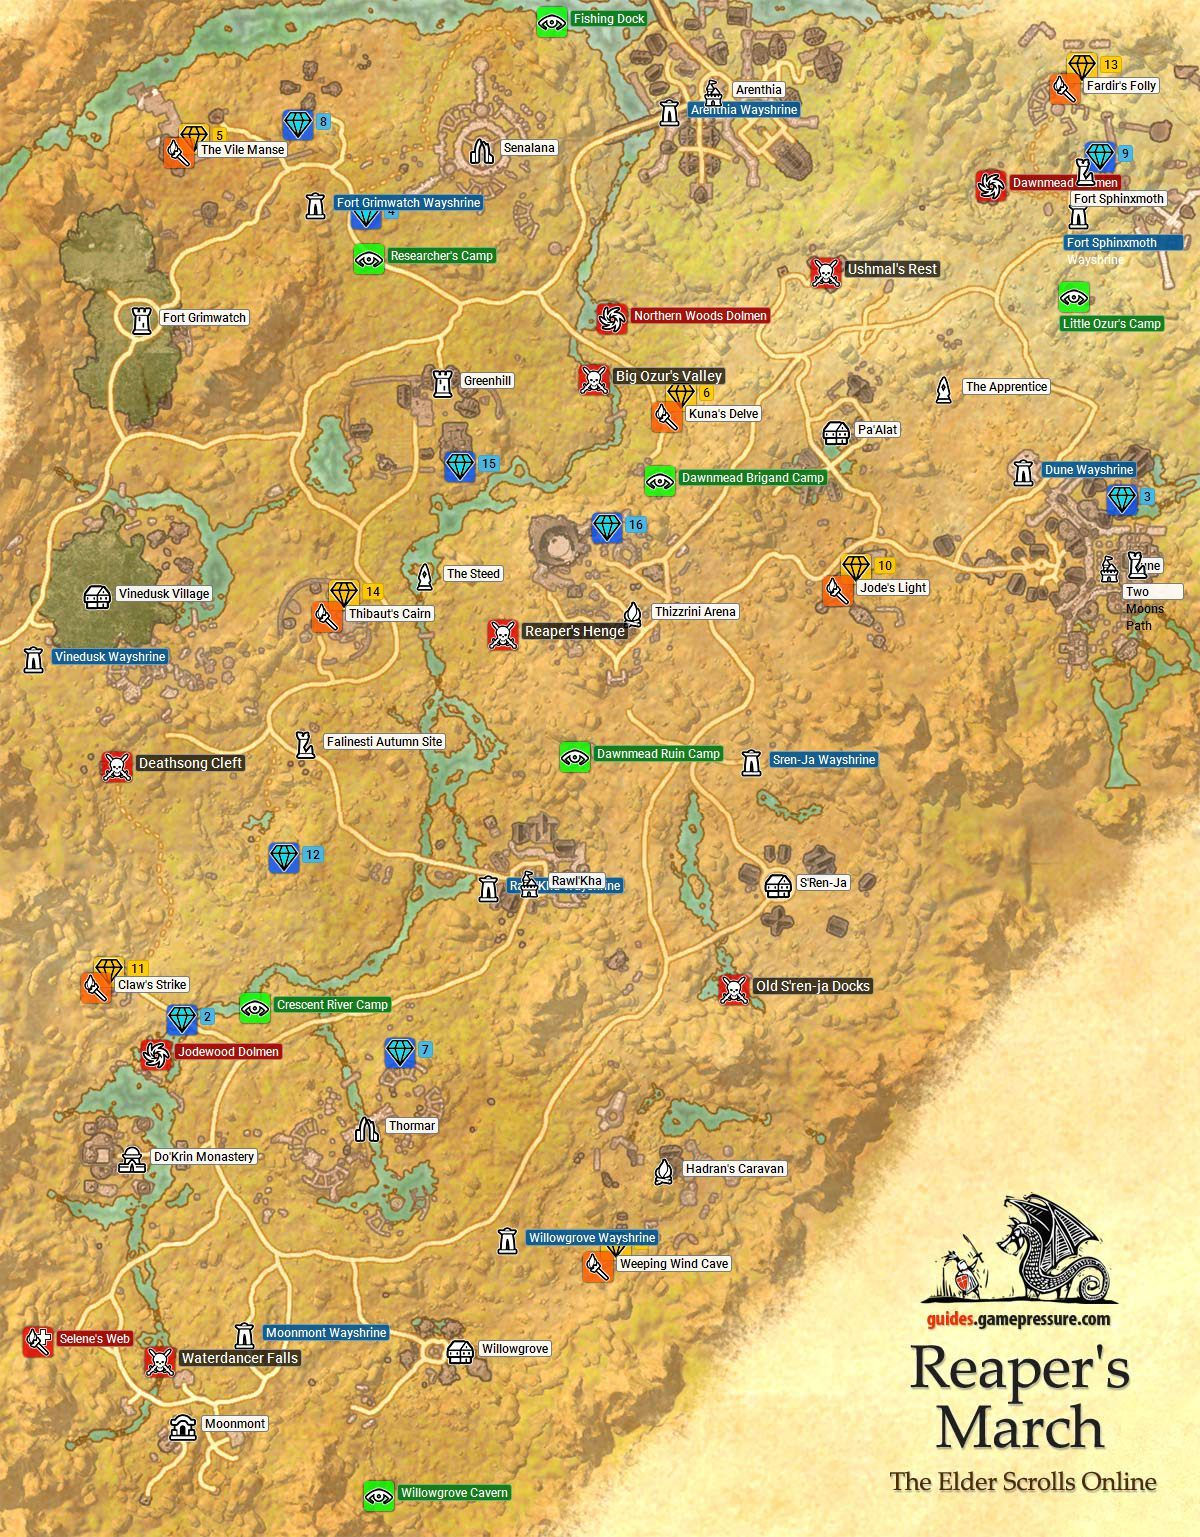 Malabal Tor Map : malabal, Elder, Scrolls, Online, Reaper's, March, Online,, Guide,